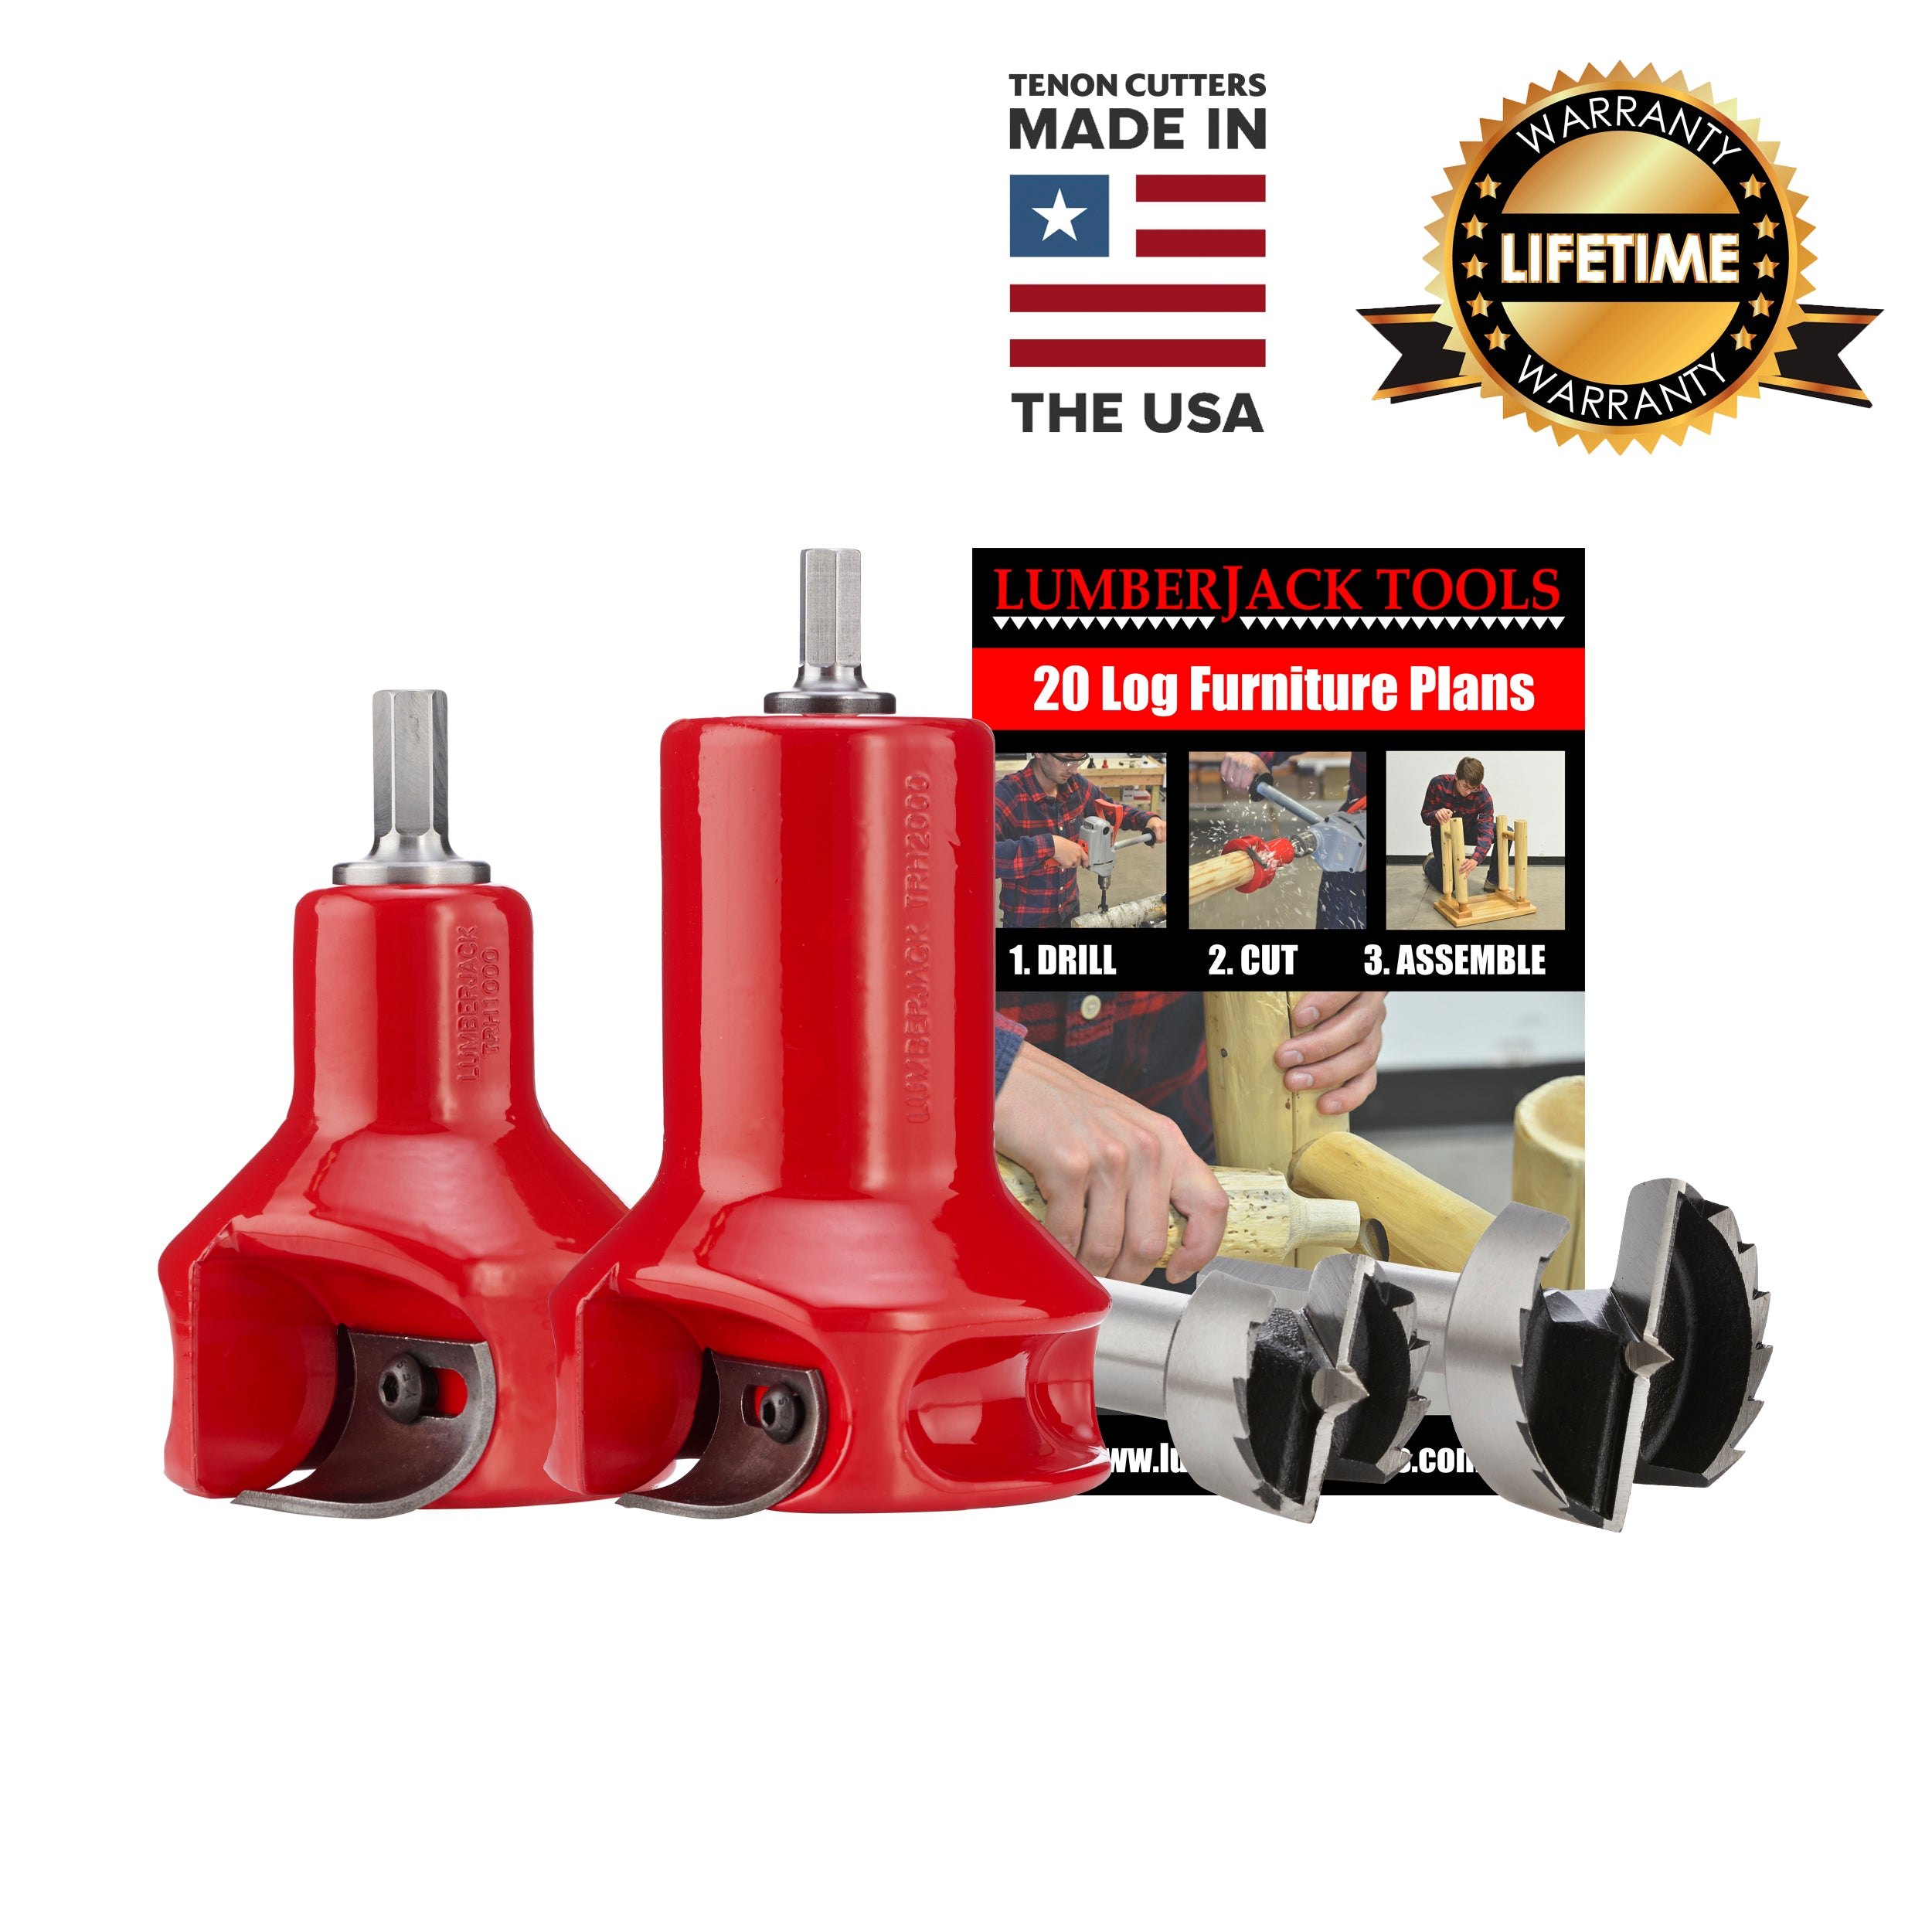 Home Series Starter Kit - USA Made Tenon Cutters